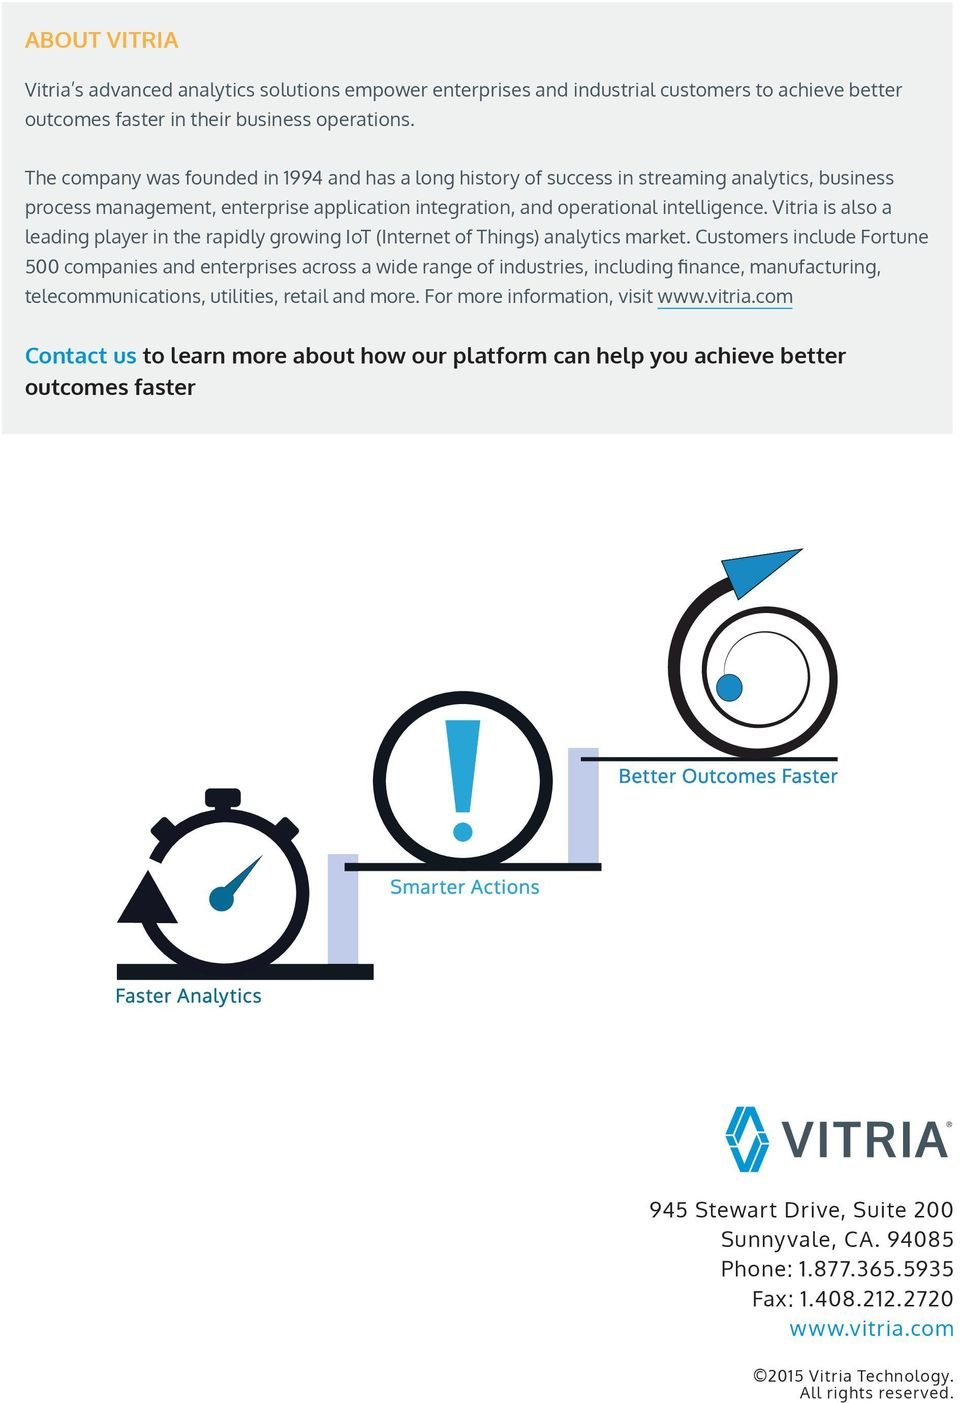 Vitria is also a leading player in the rapidly growing IoT (Internet of Things) analytics market.